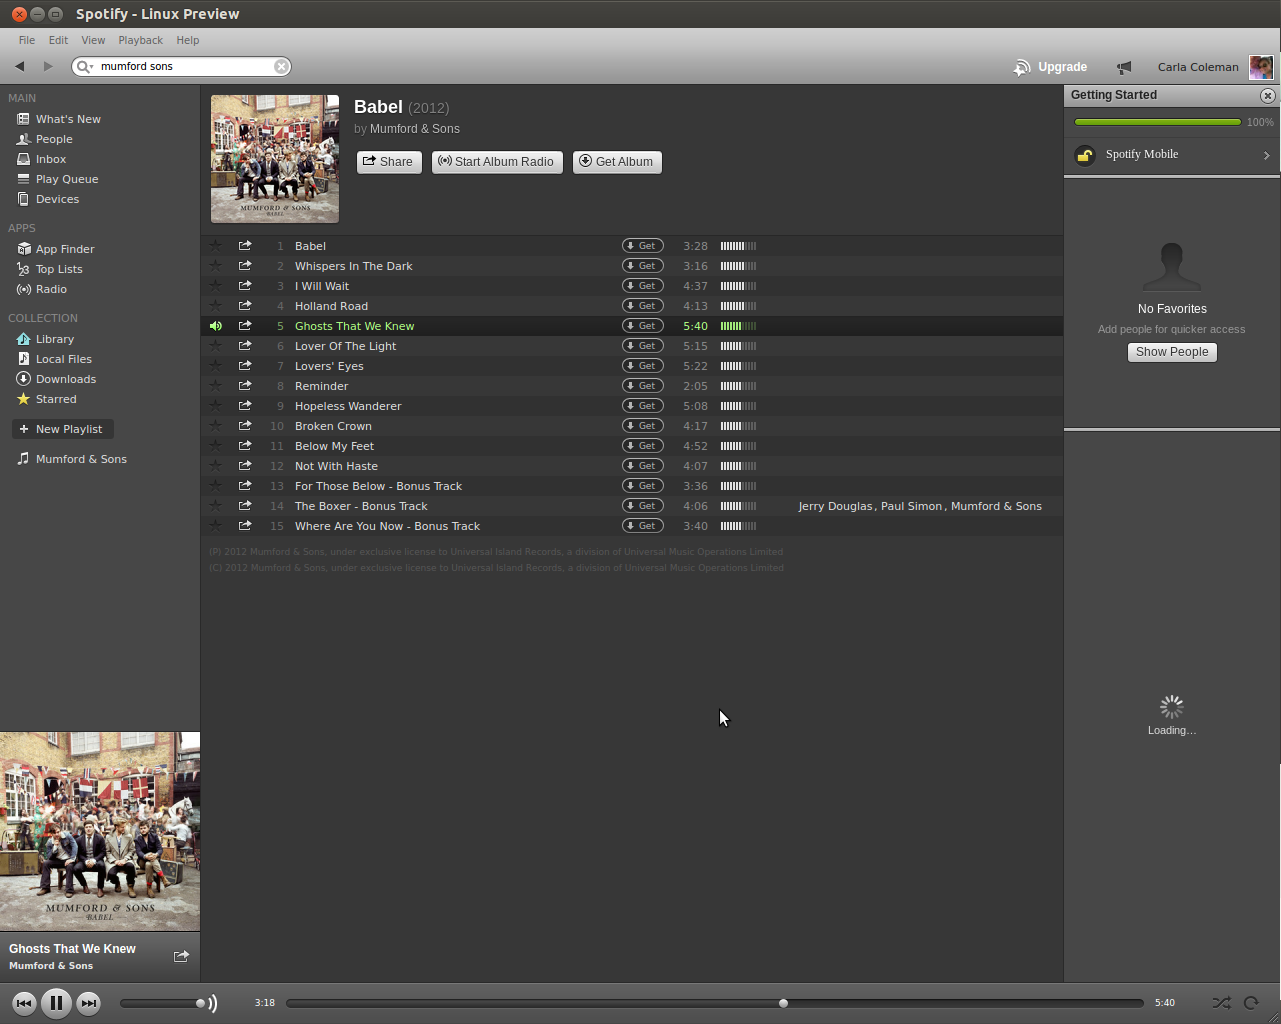 Spotify for Linux Preview